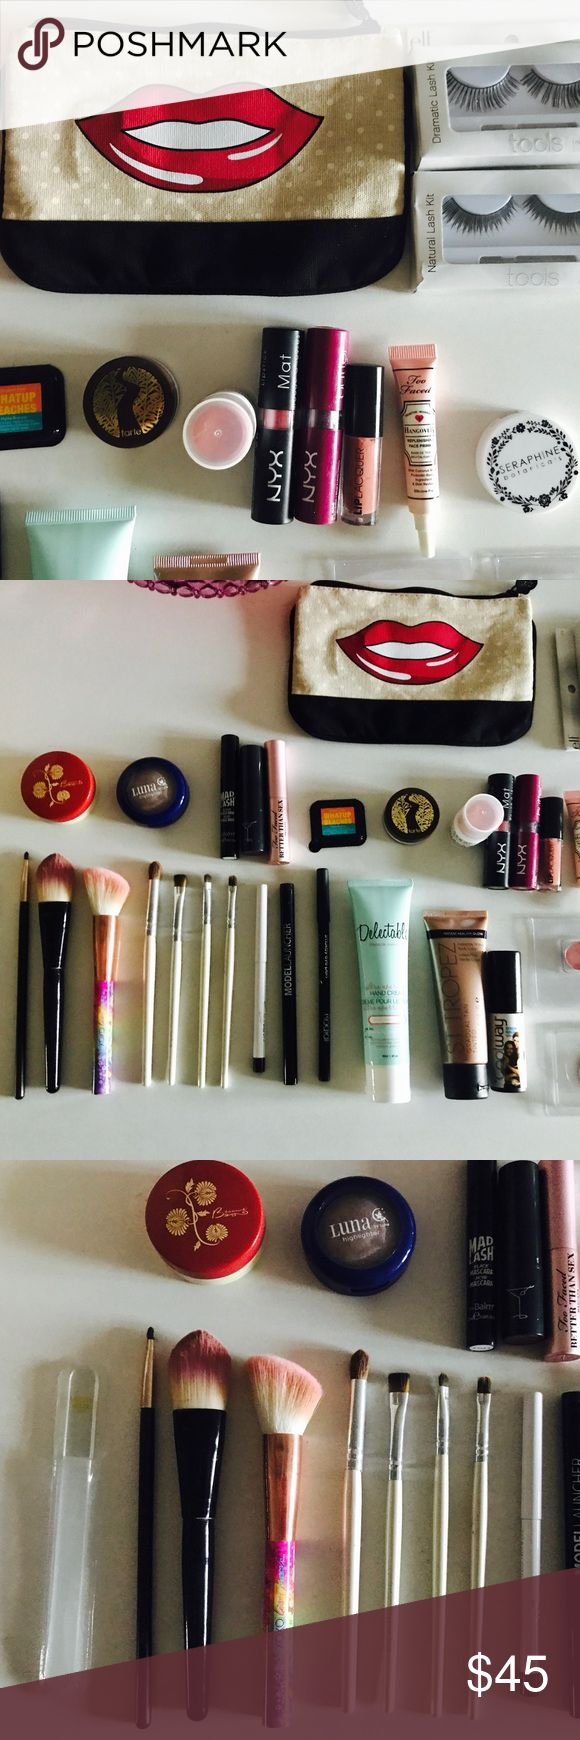 37 pieces!! TARTE, URBAN DECAY, TOO FACED, ST TROP These are all BRAND NEW! I have only swatch them but have never used them. 37 PIECES TOTAL, including: Margaret Dabbs Glass File, 7 high make-up brushes, Colour Pop Gel Liner, Model Launcher Emerald Eye Liner, Rodial Black Smokey Eye Pen, Delectable Full Size Vanilla Mint Shea Butter Hand Cream, St Tropez Bronzer, Coolway, 3 Urband Decay Eye Shadow, The Balm Bronzer and Mad Lash Mascara, Too Faced Hangover Face Primer, Tarte Smooth Operator…